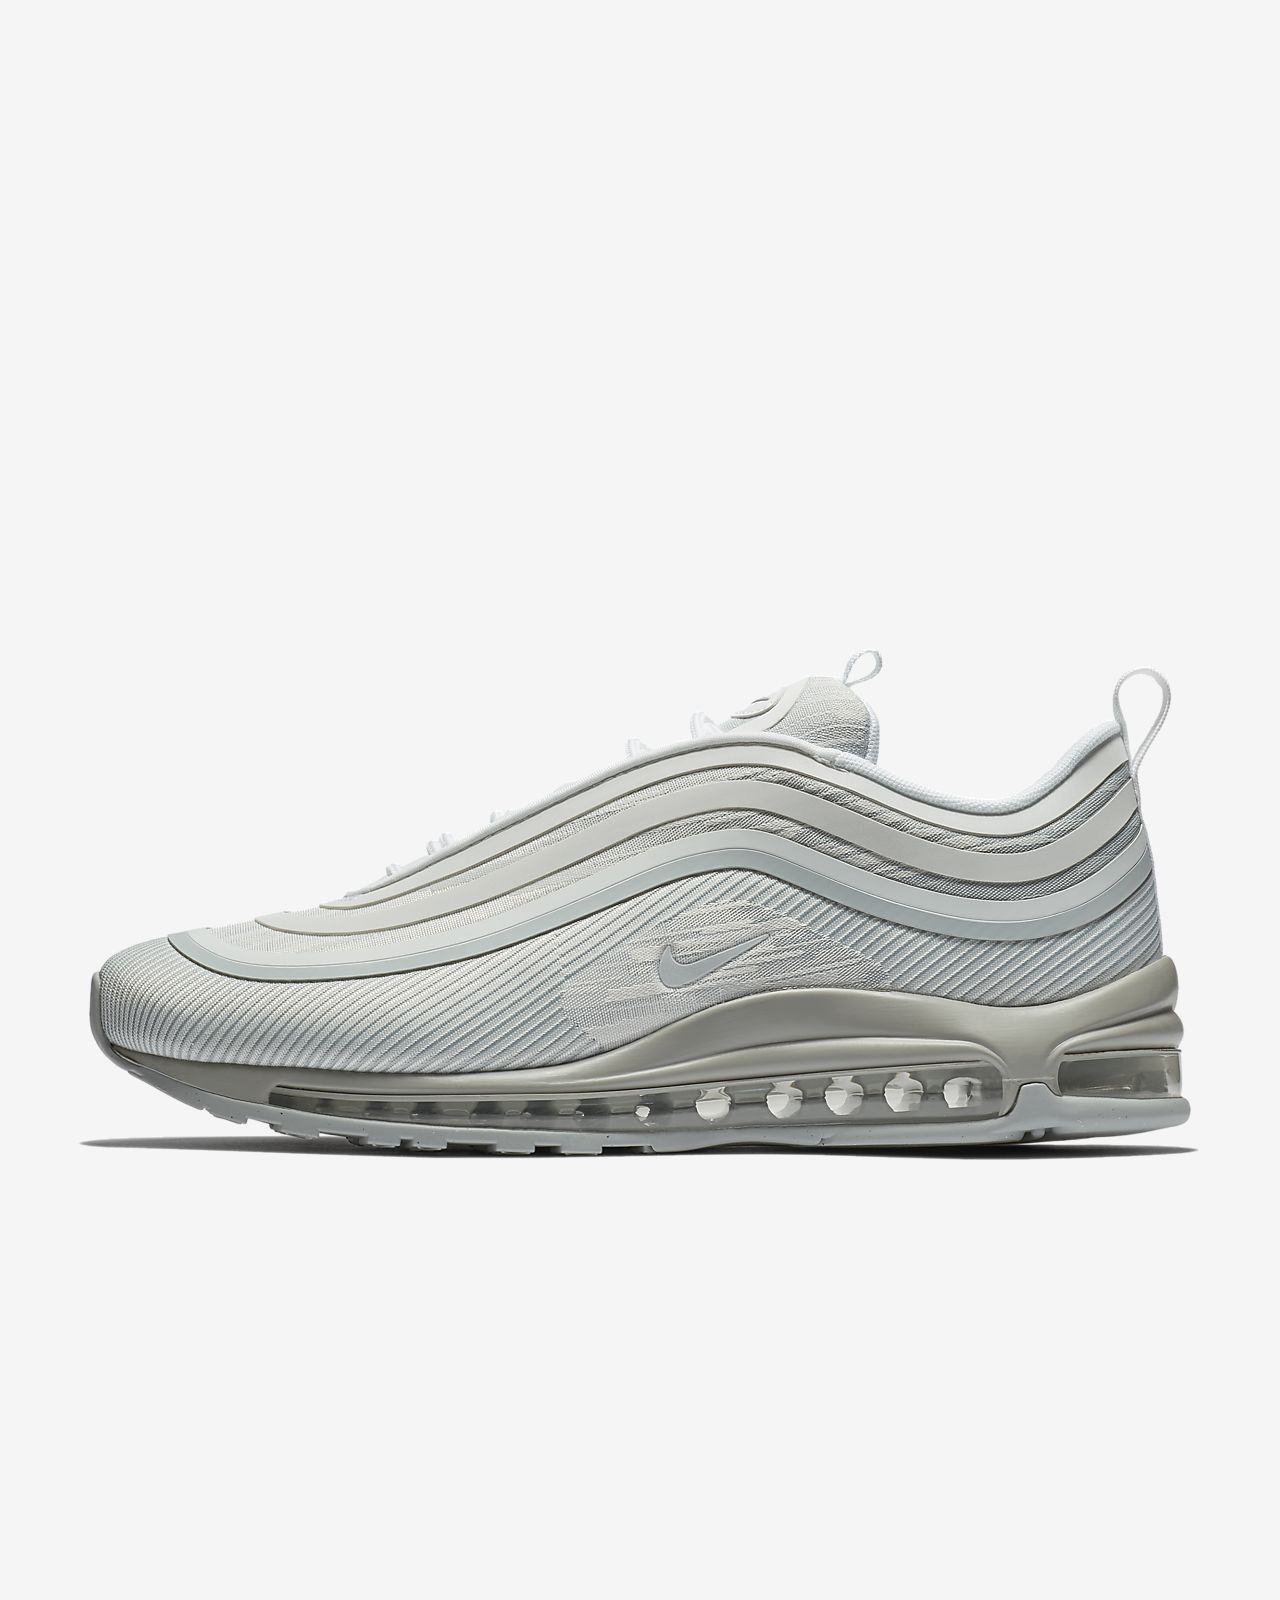 31b7eba689 Nike Air Max 97 Ultra '17 Men's Shoe. Nike.com CA